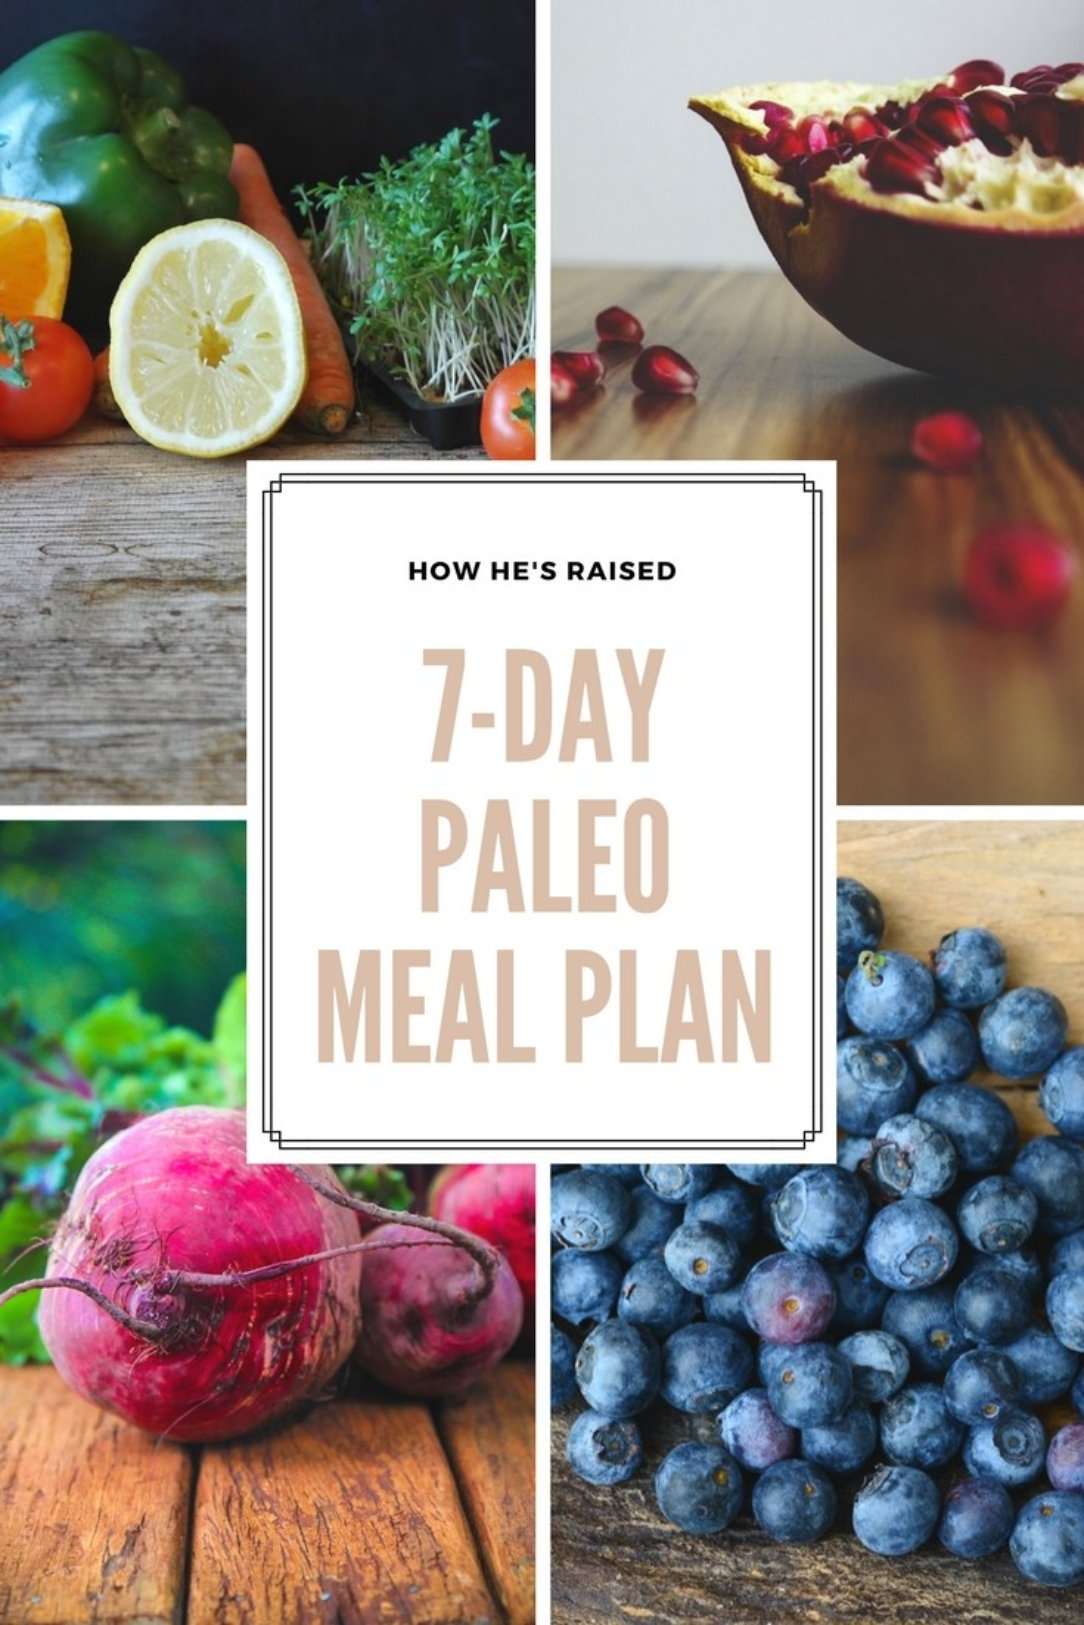 7-Day Paleo Meal Plan